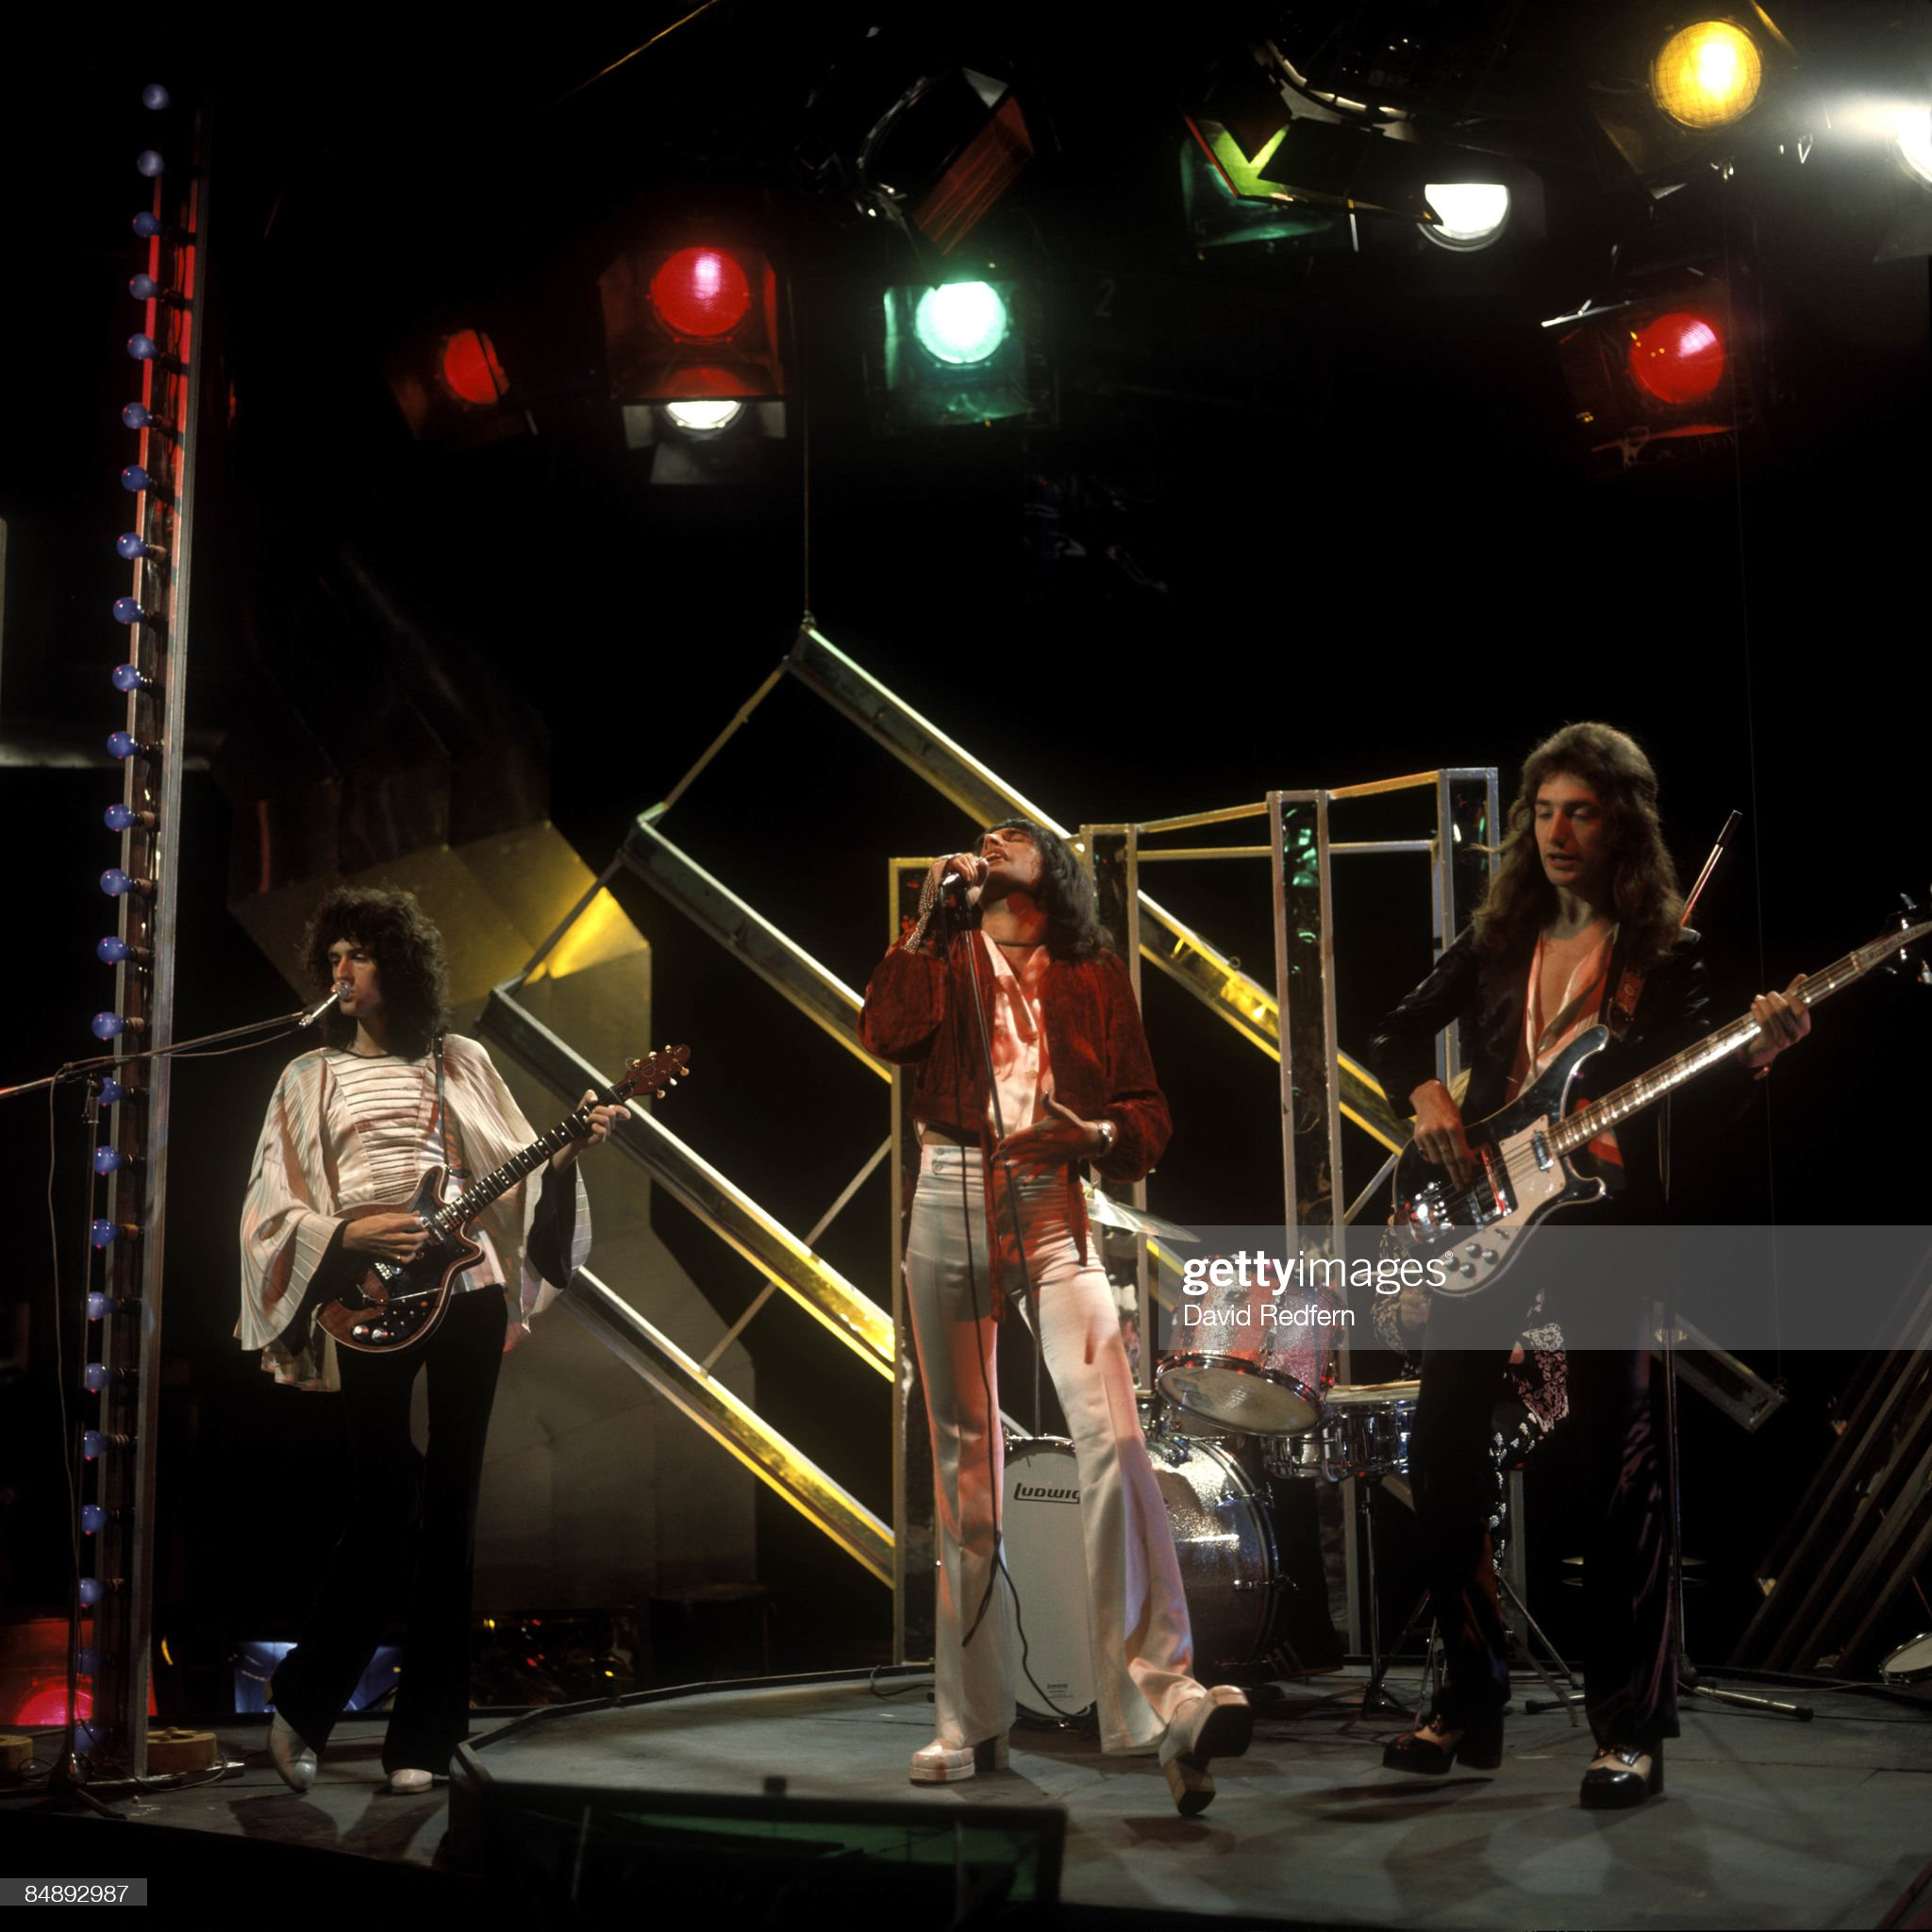 https://media.gettyimages.com/photos/english-rock-group-queen-perform-their-new-single-killer-queen-on-the-picture-id84892987?s=2048x2048